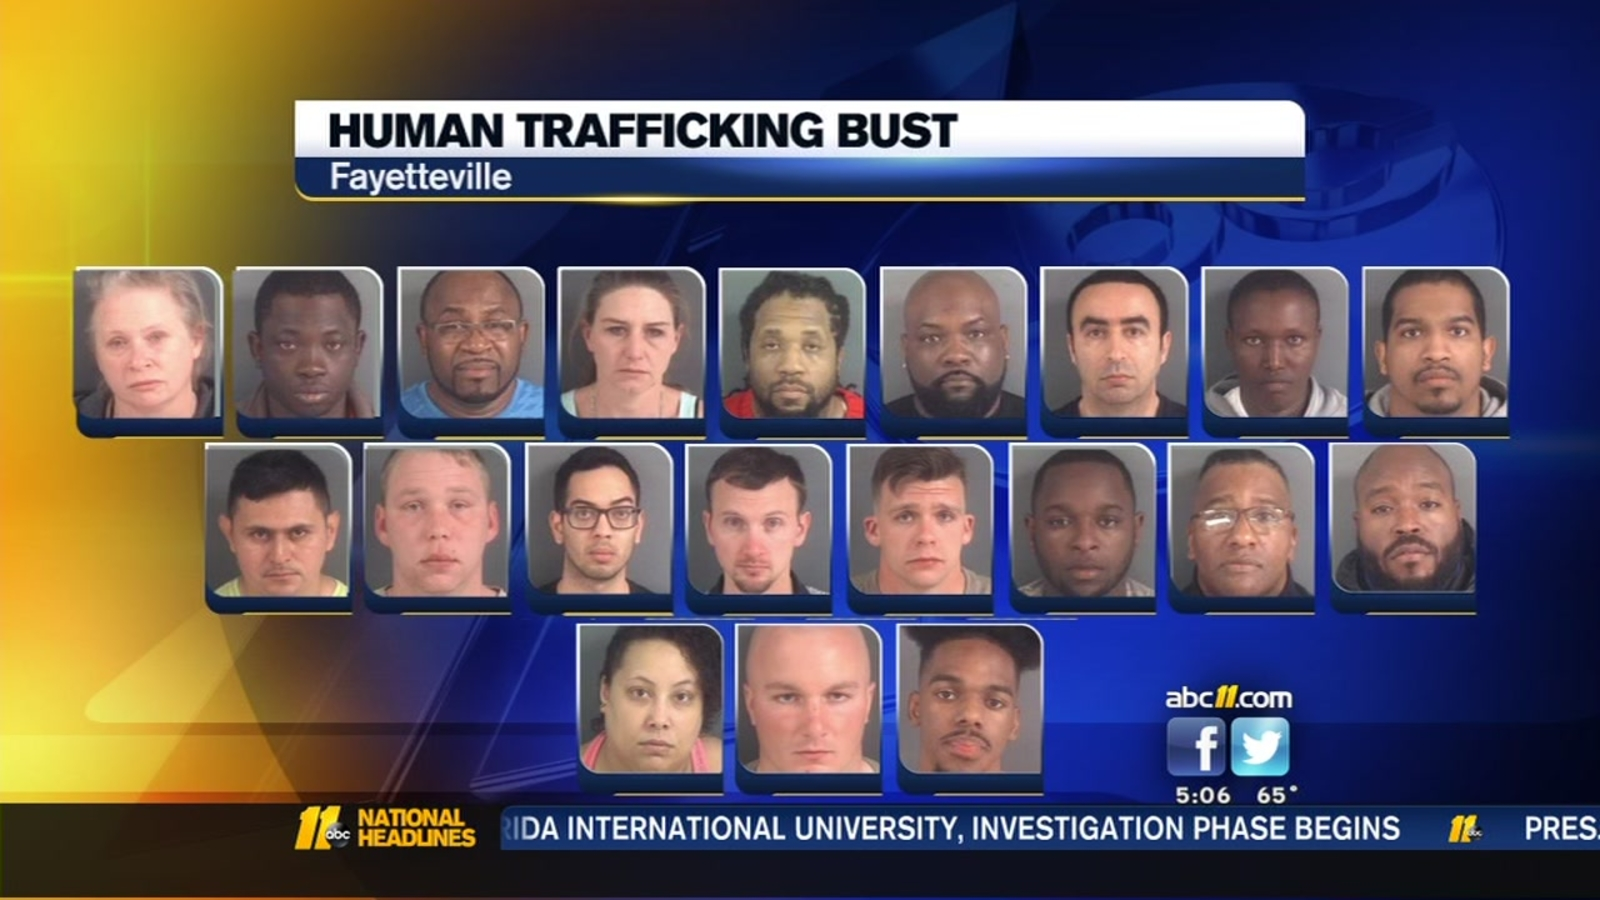 20 Arrested In Undercover Prostitution Bust In Fayetteville Abc11 Com